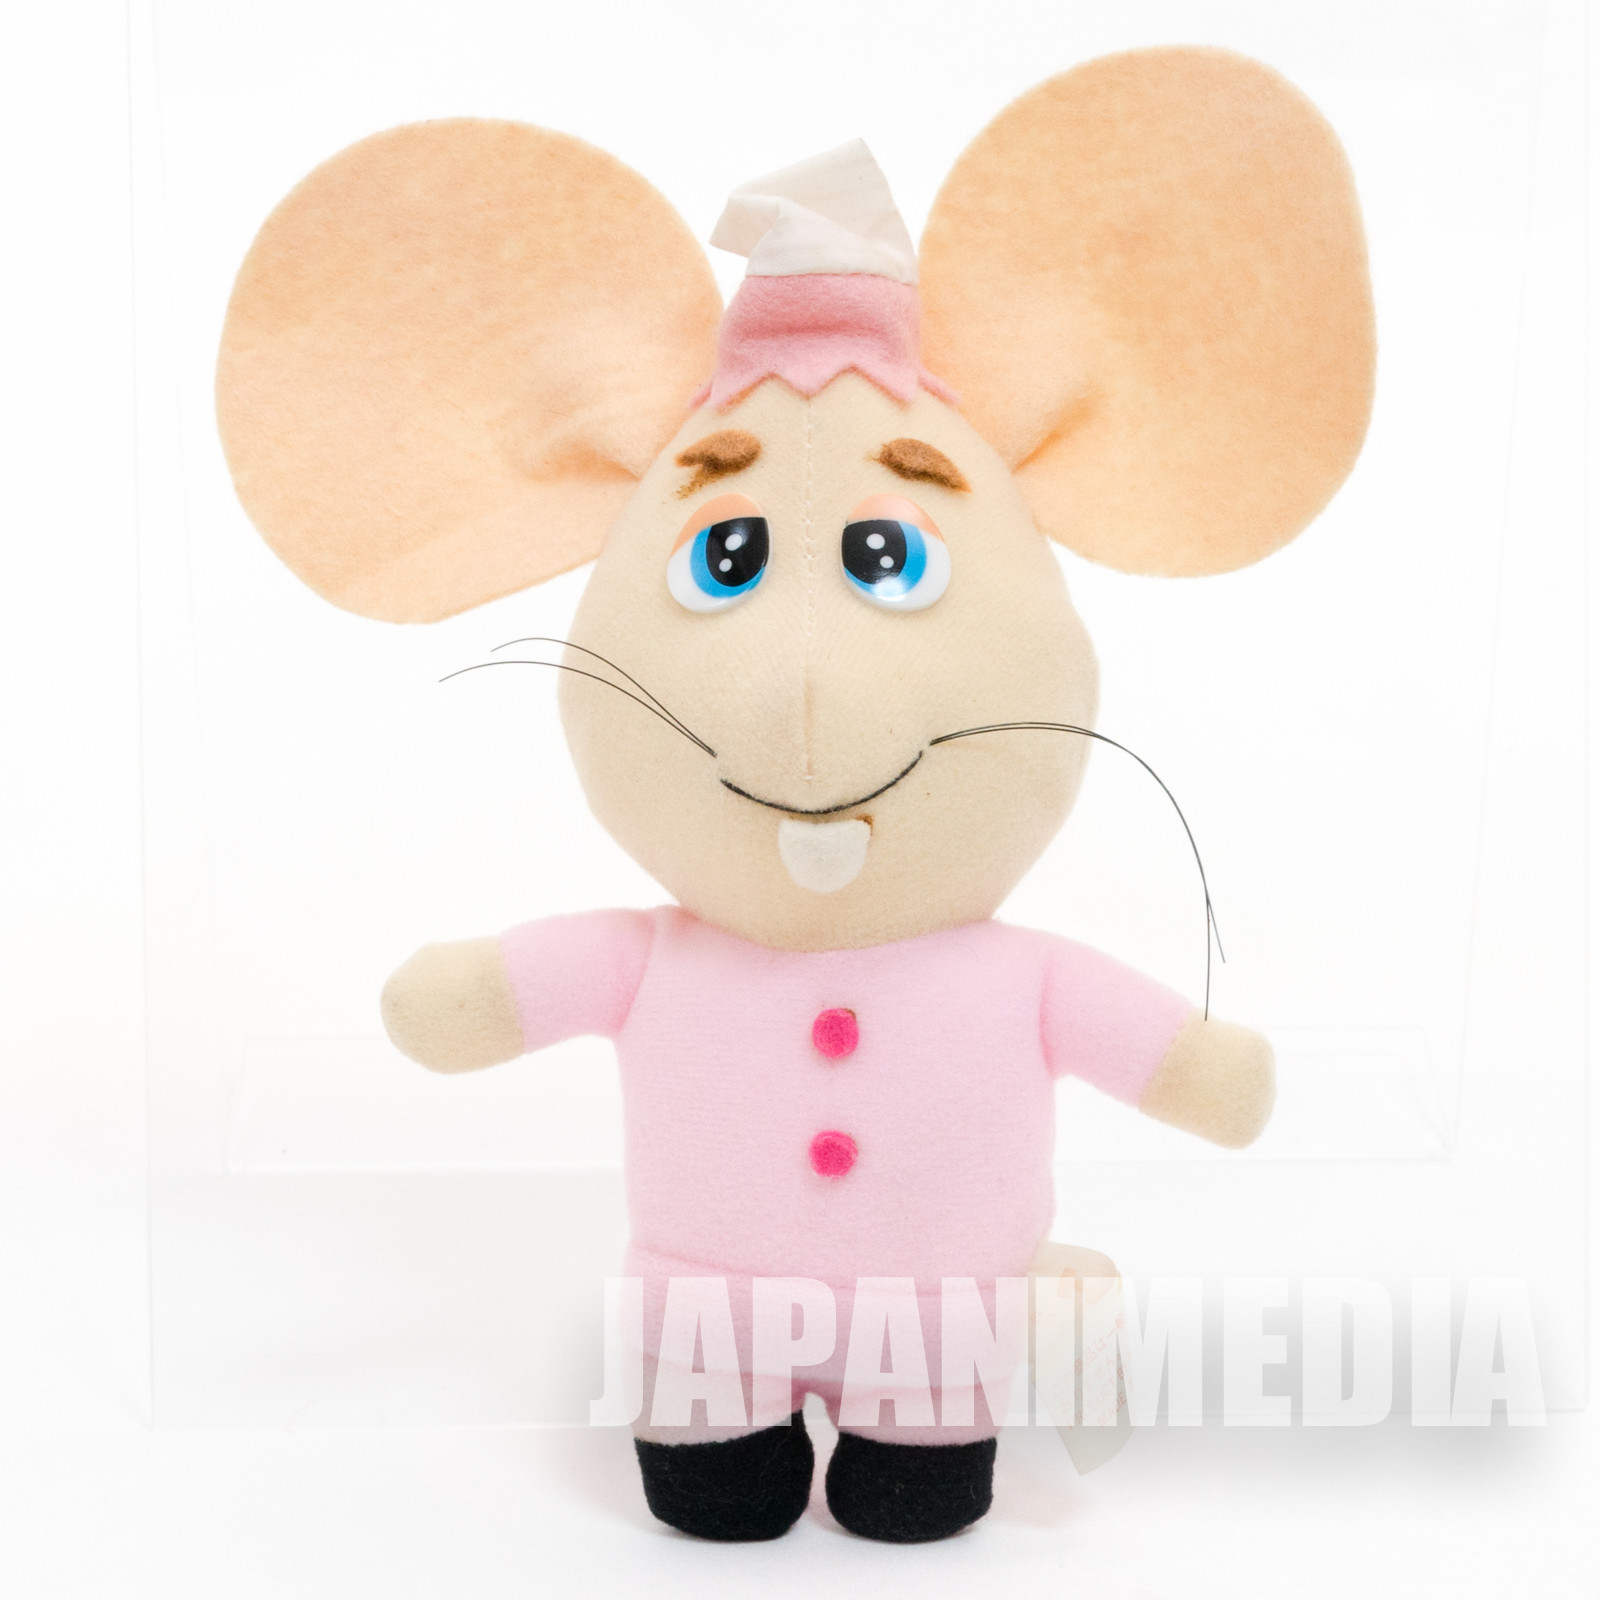 "Topo Gigio 7"" Plush Doll Pink JAPAN ANIME"